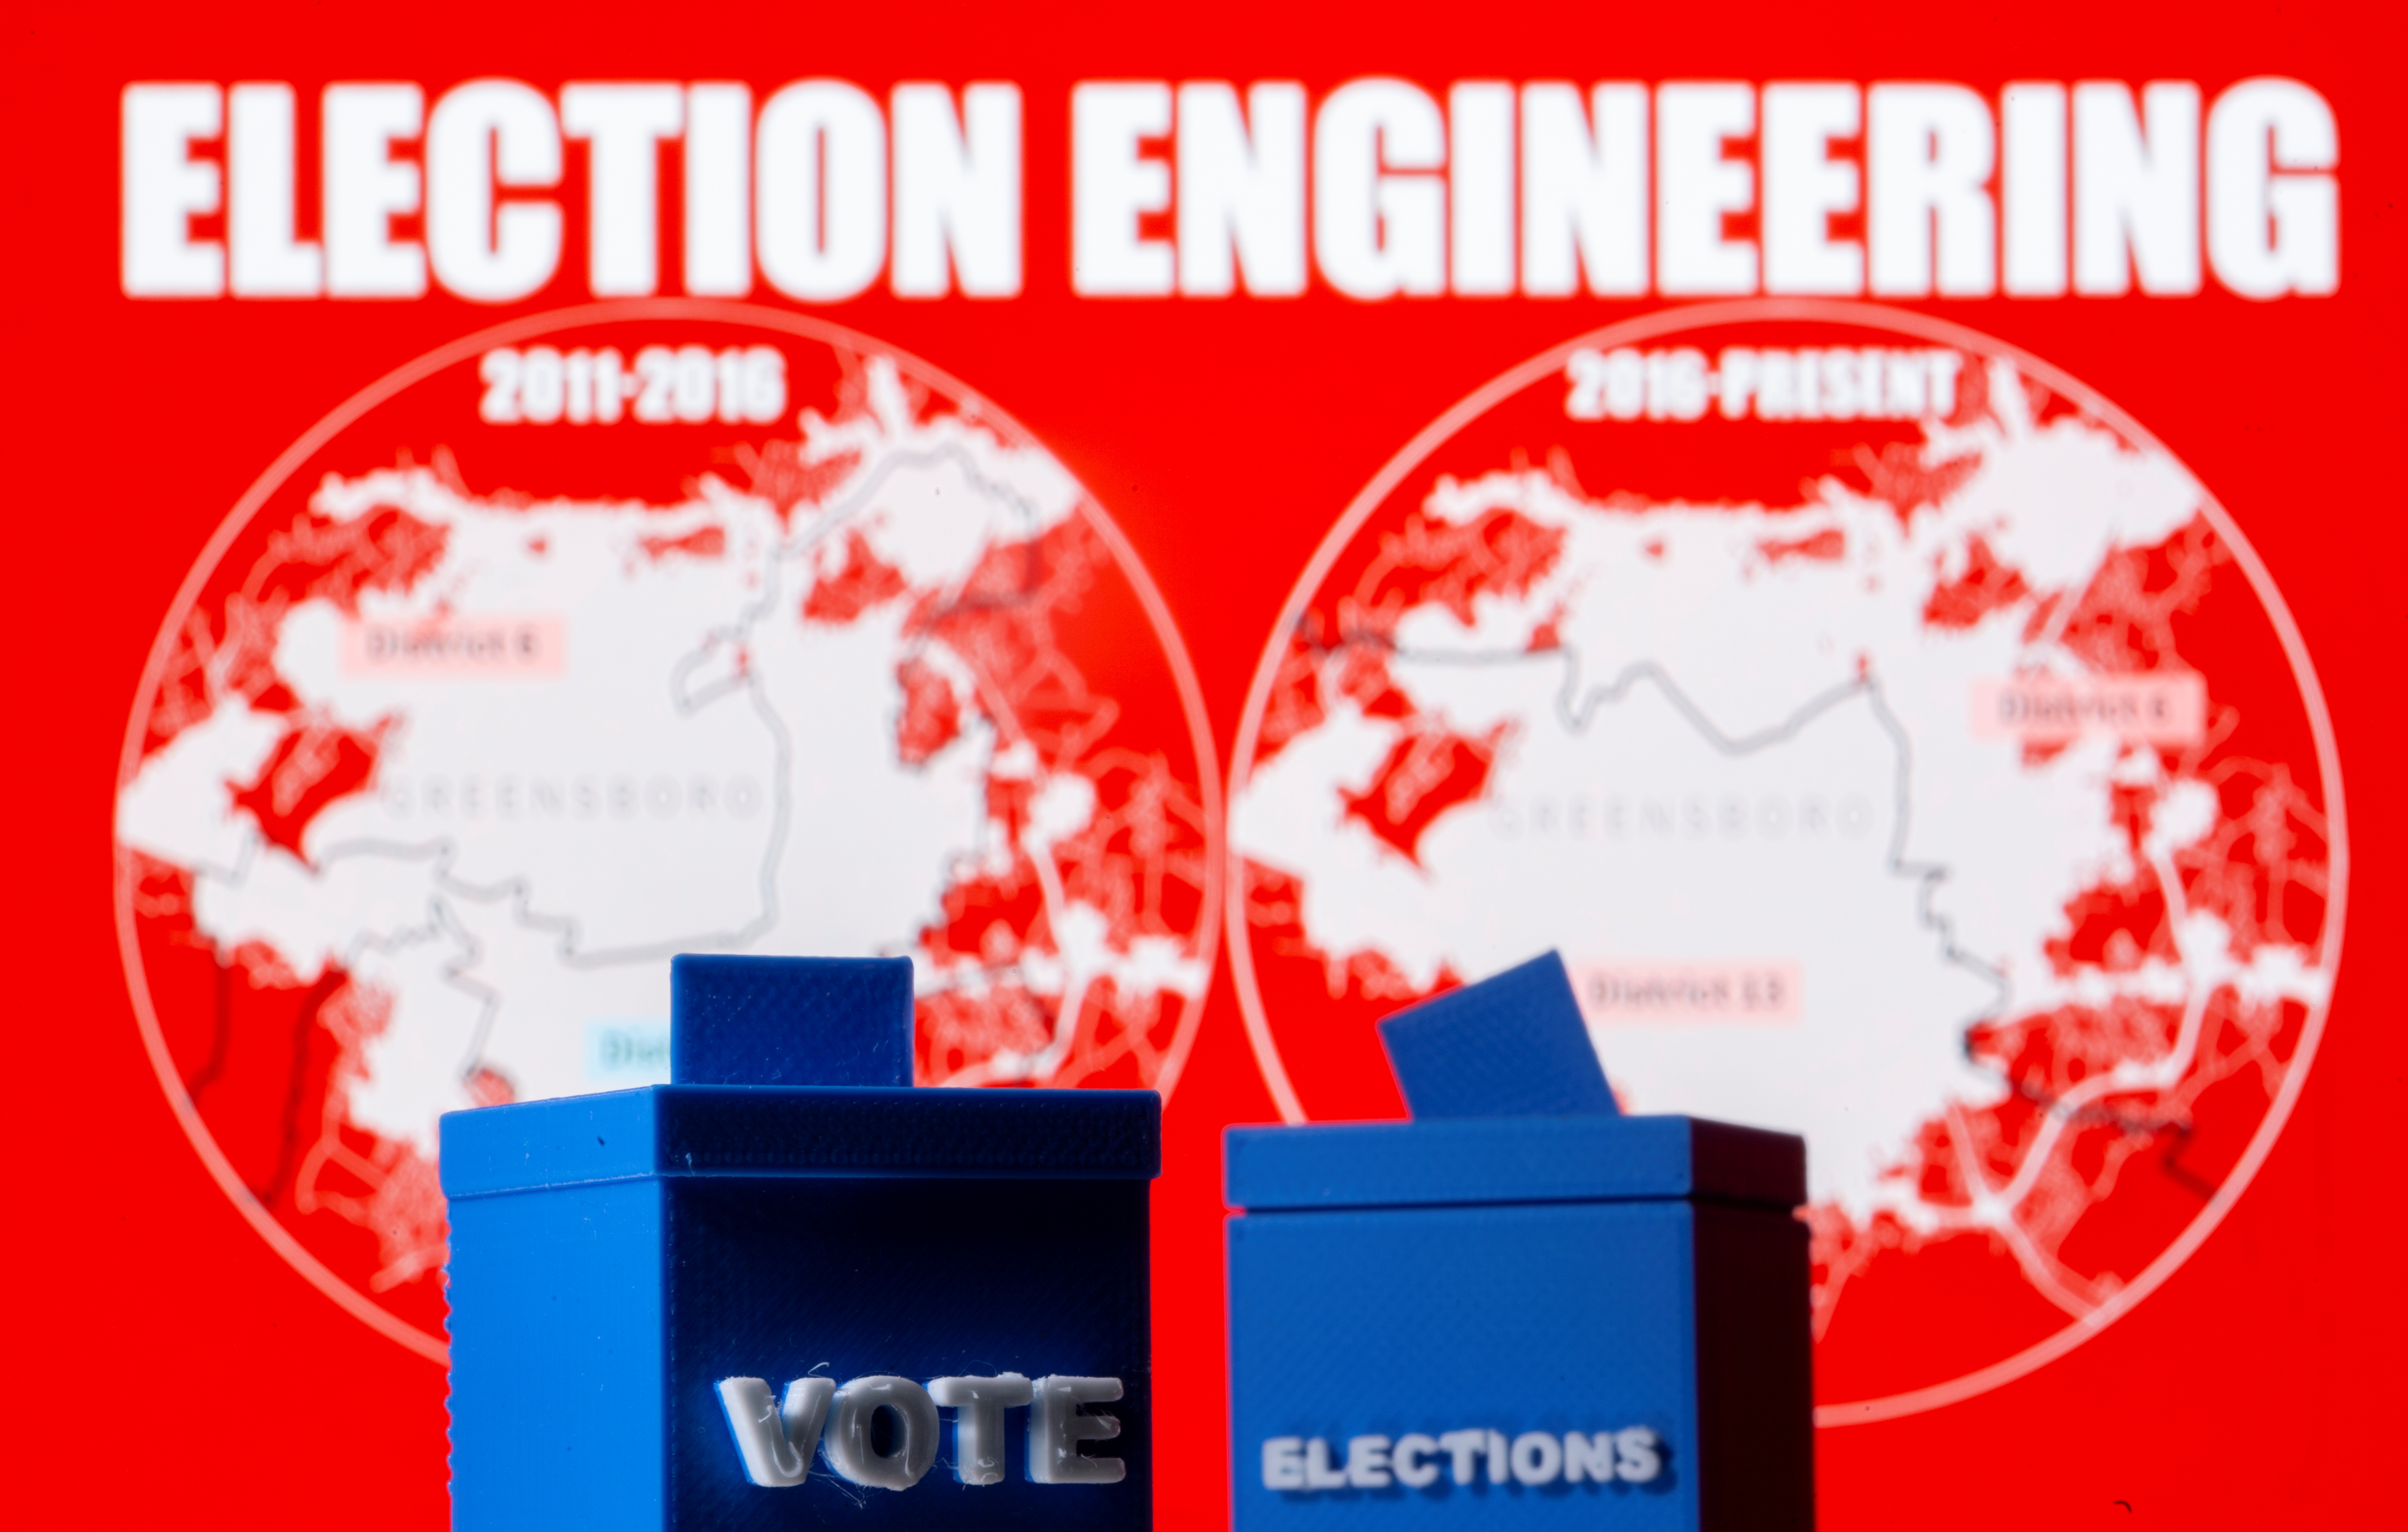 A 3D printed ballot boxes are seen in front of displayed North Carolina district maps in this illustration taken August 13, 2021. REUTERS/Dado Ruvic/Illustration